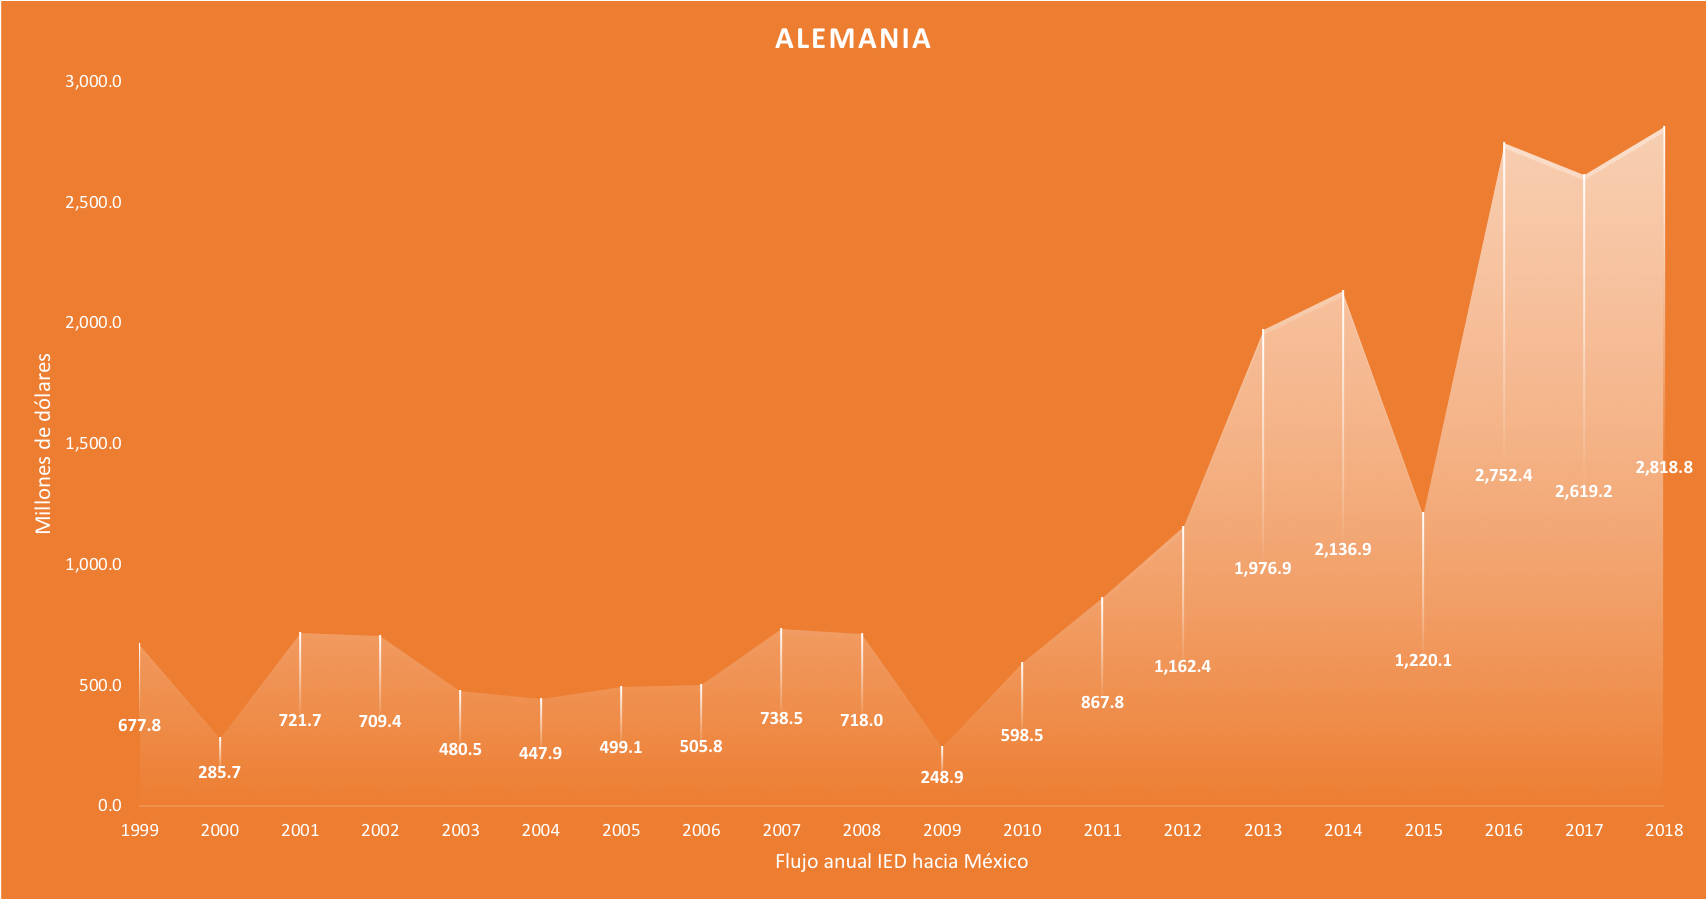 Frontier-Alemania-IED-1999-2018